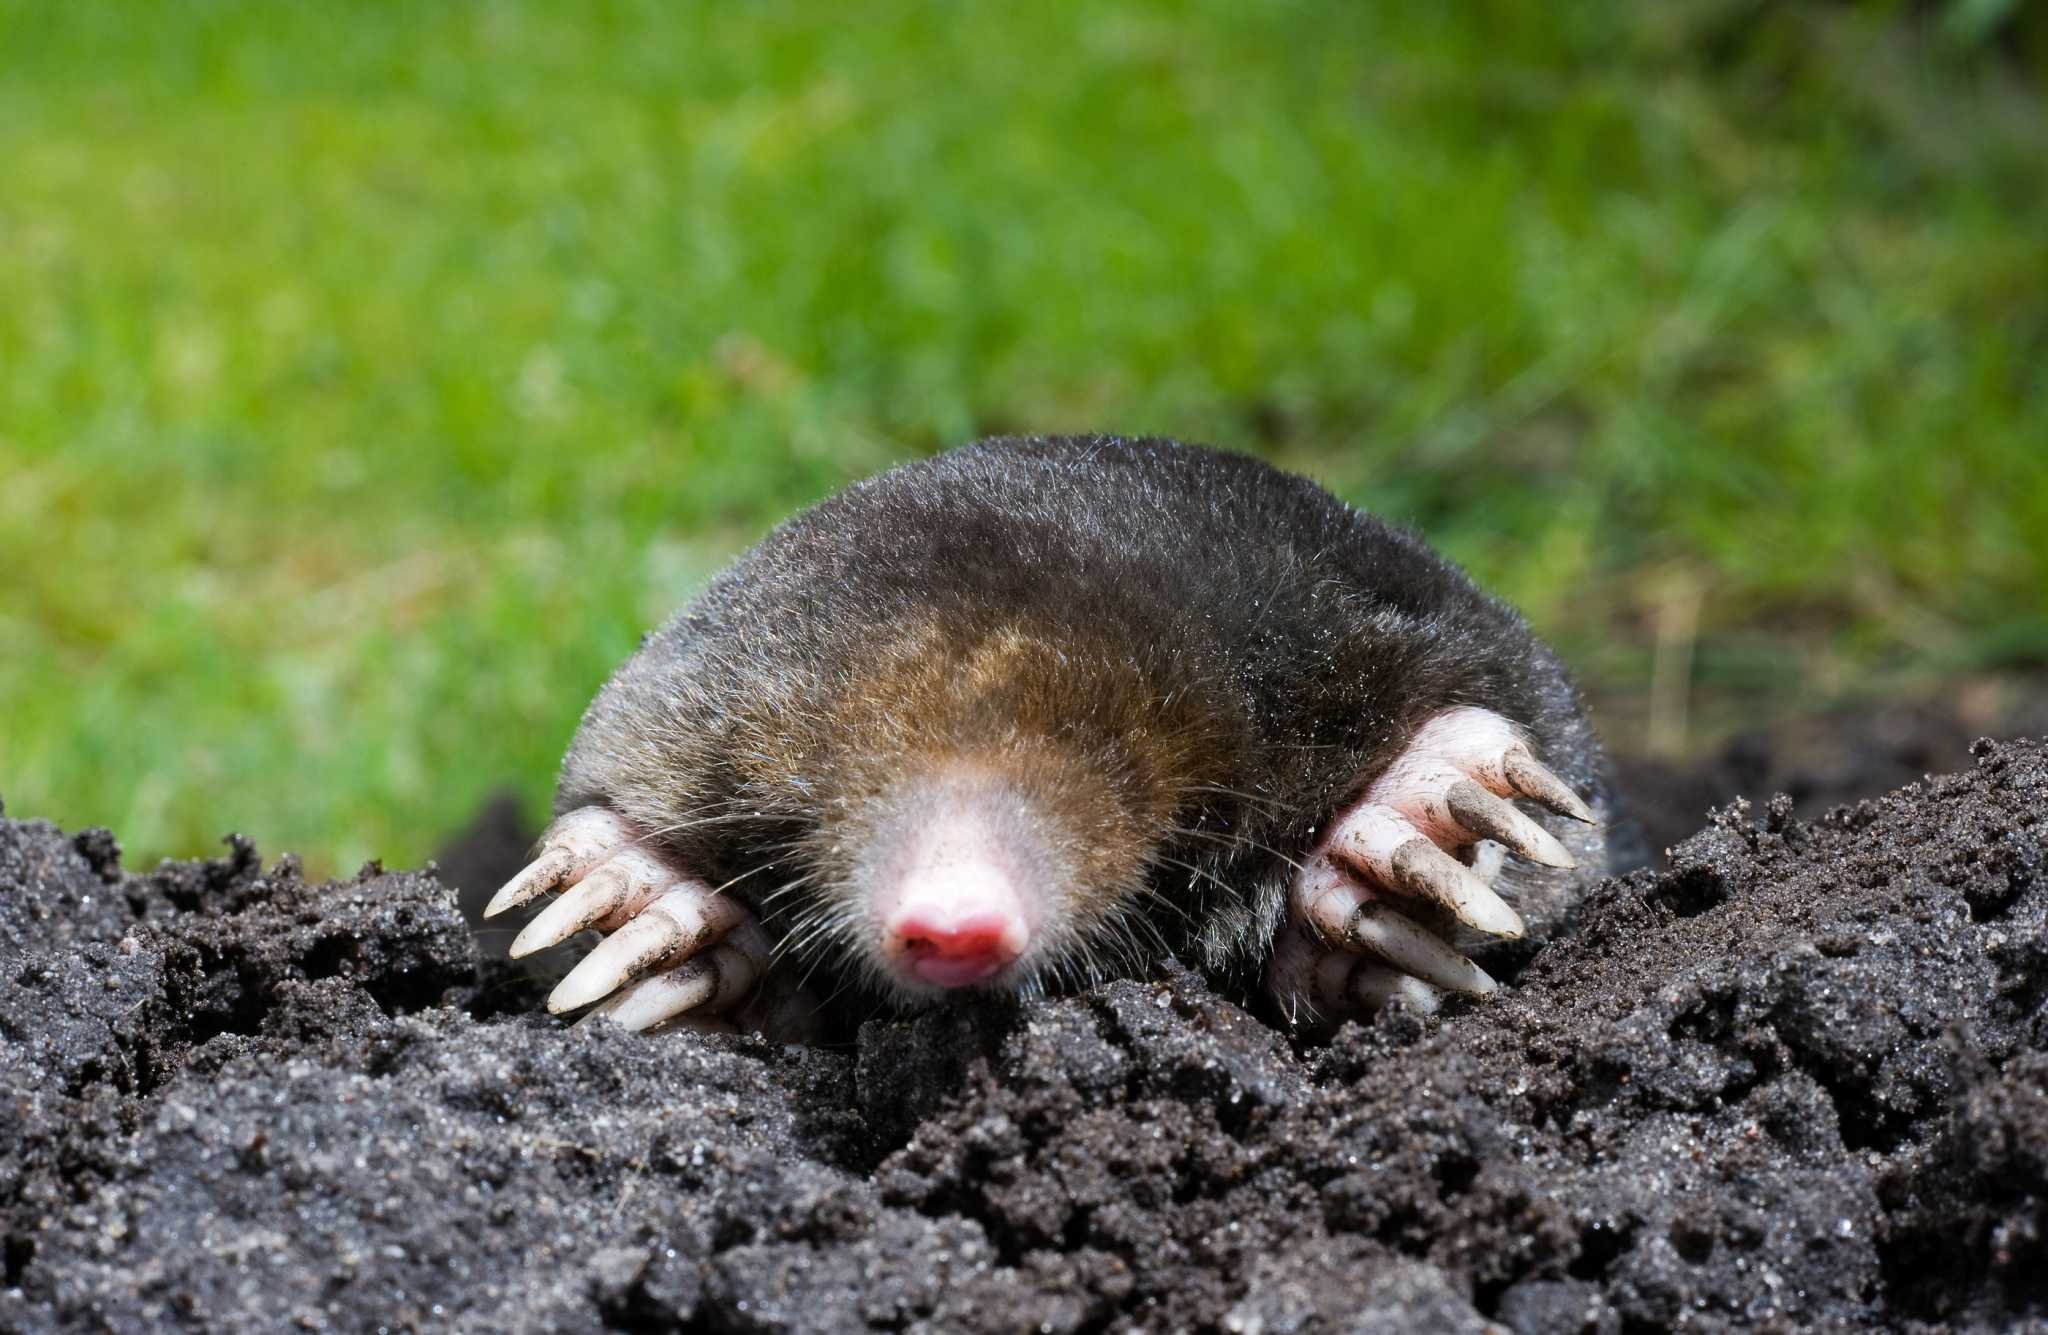 How to get rid of ground moles - Mole In Sand How To Identify Moles